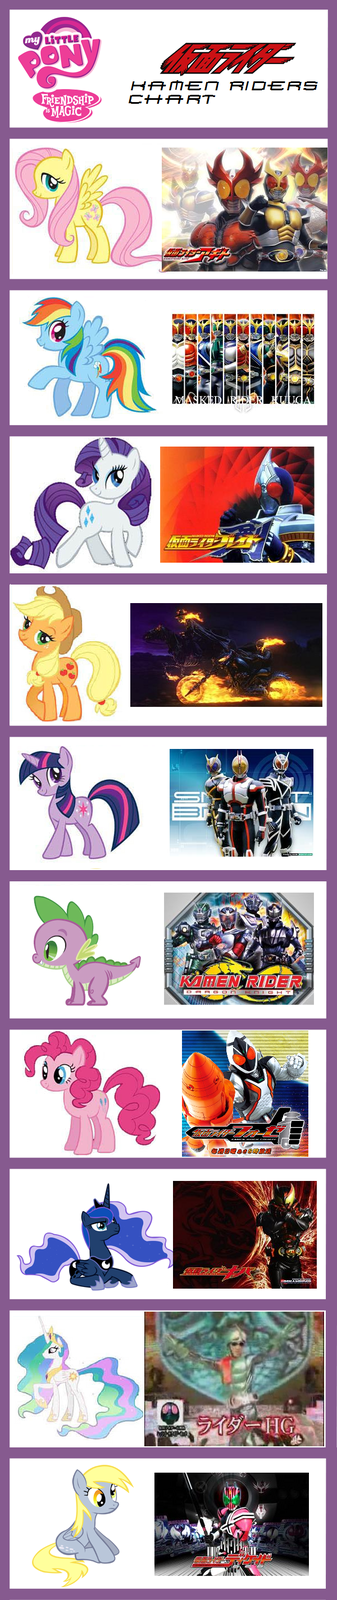 Pony Comparison Chart: Kamen Rider edition